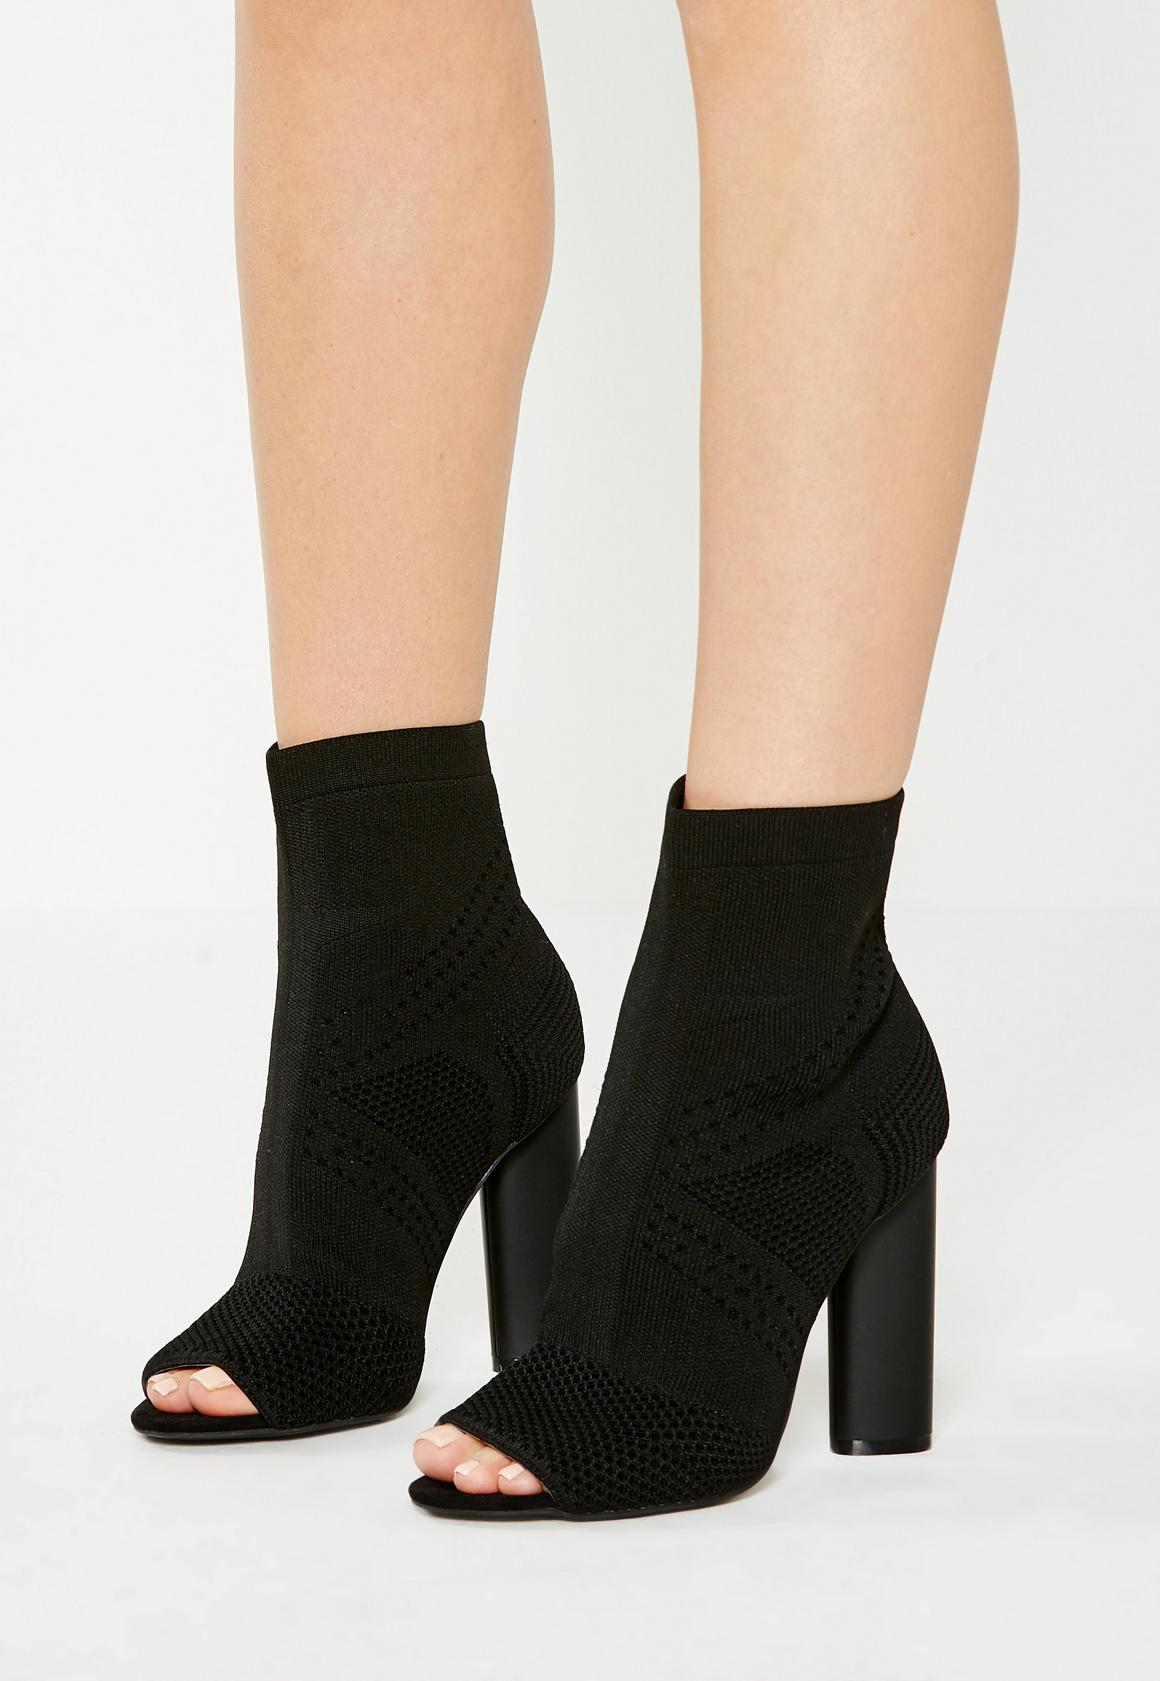 Boots - Shop Women's Boots Online | Missguided